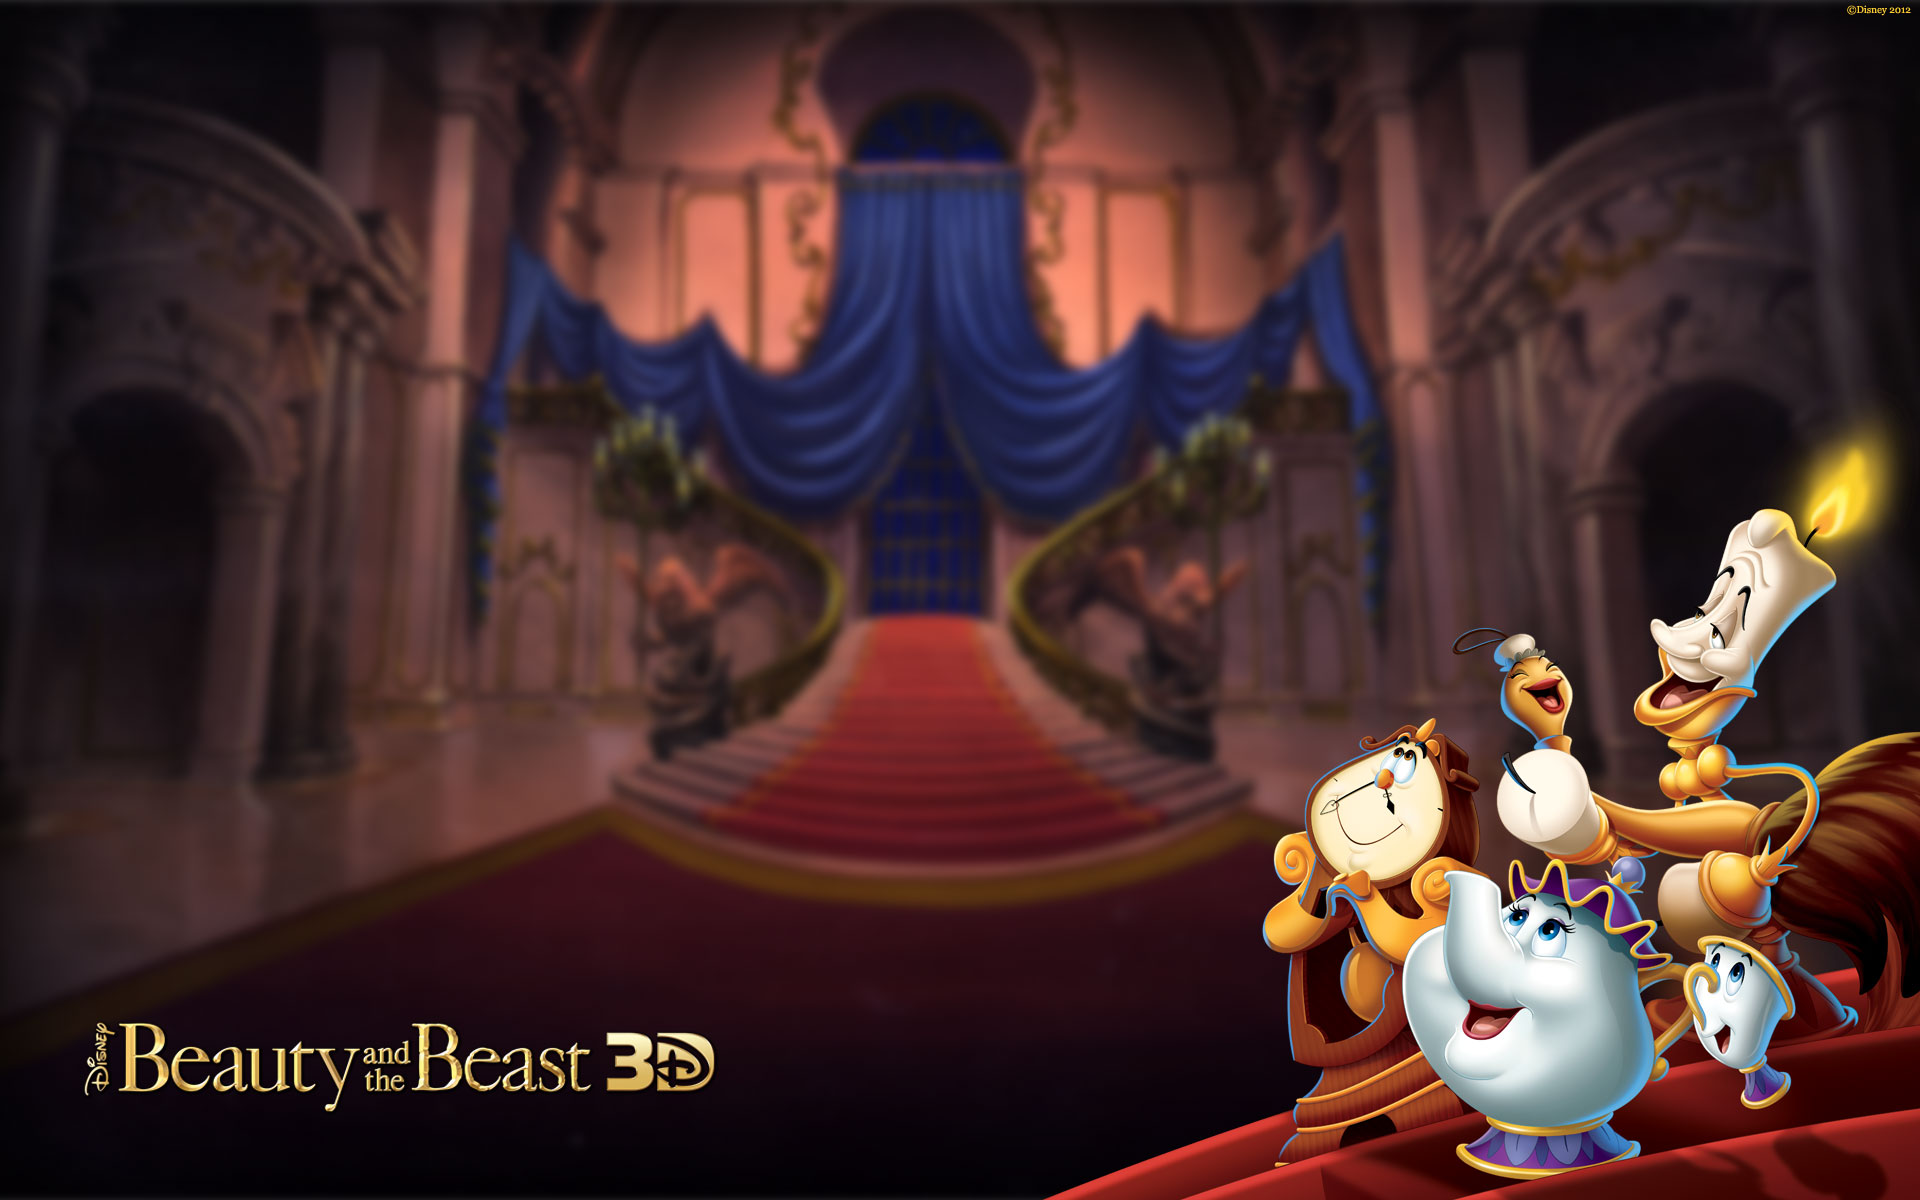 Disney Princess Images Beauty And The Beast 3D HD